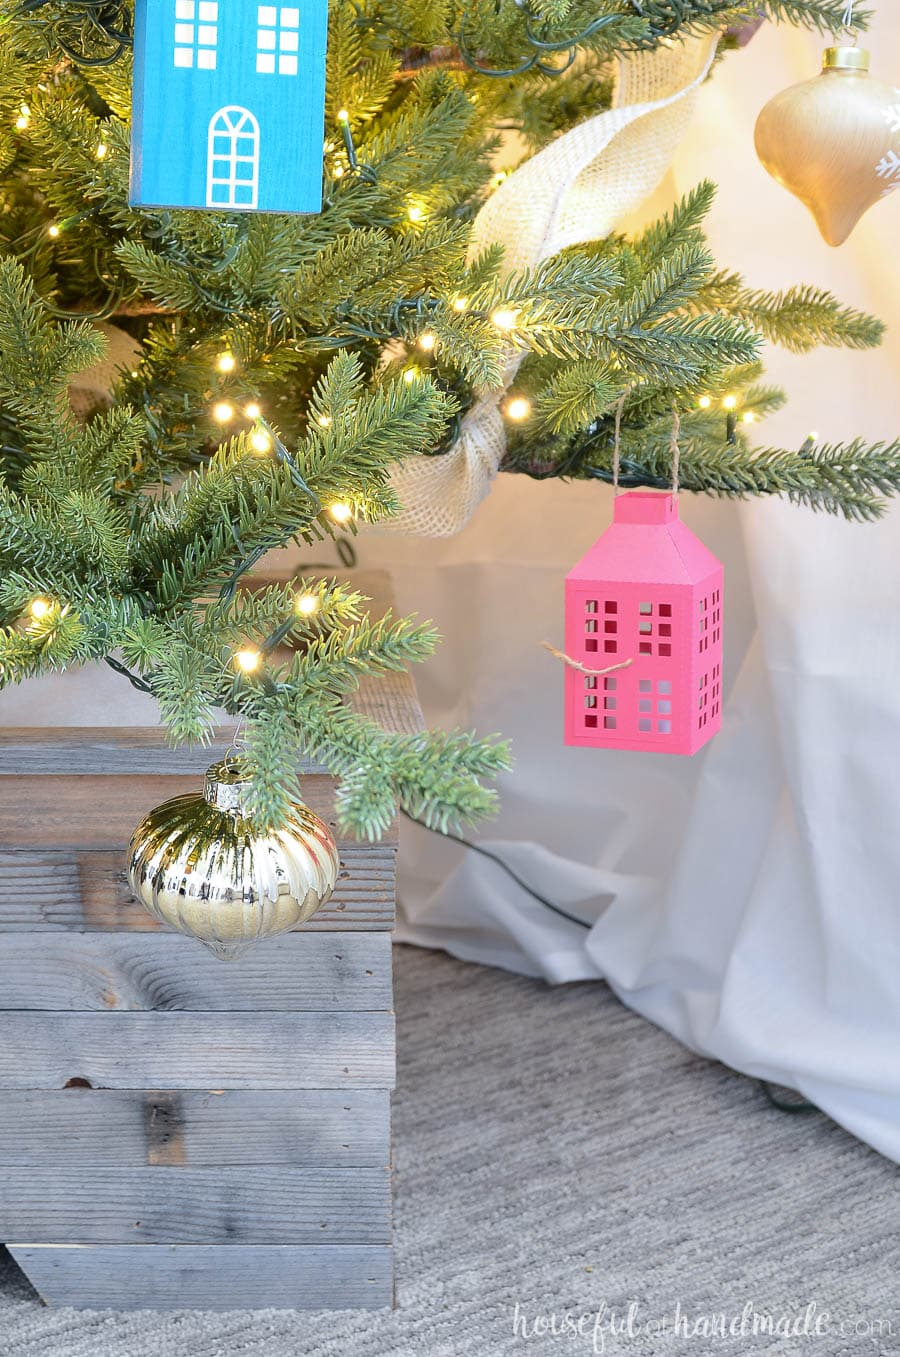 Christmas tree decorated with paper lantern Christmas ornament and wood house.